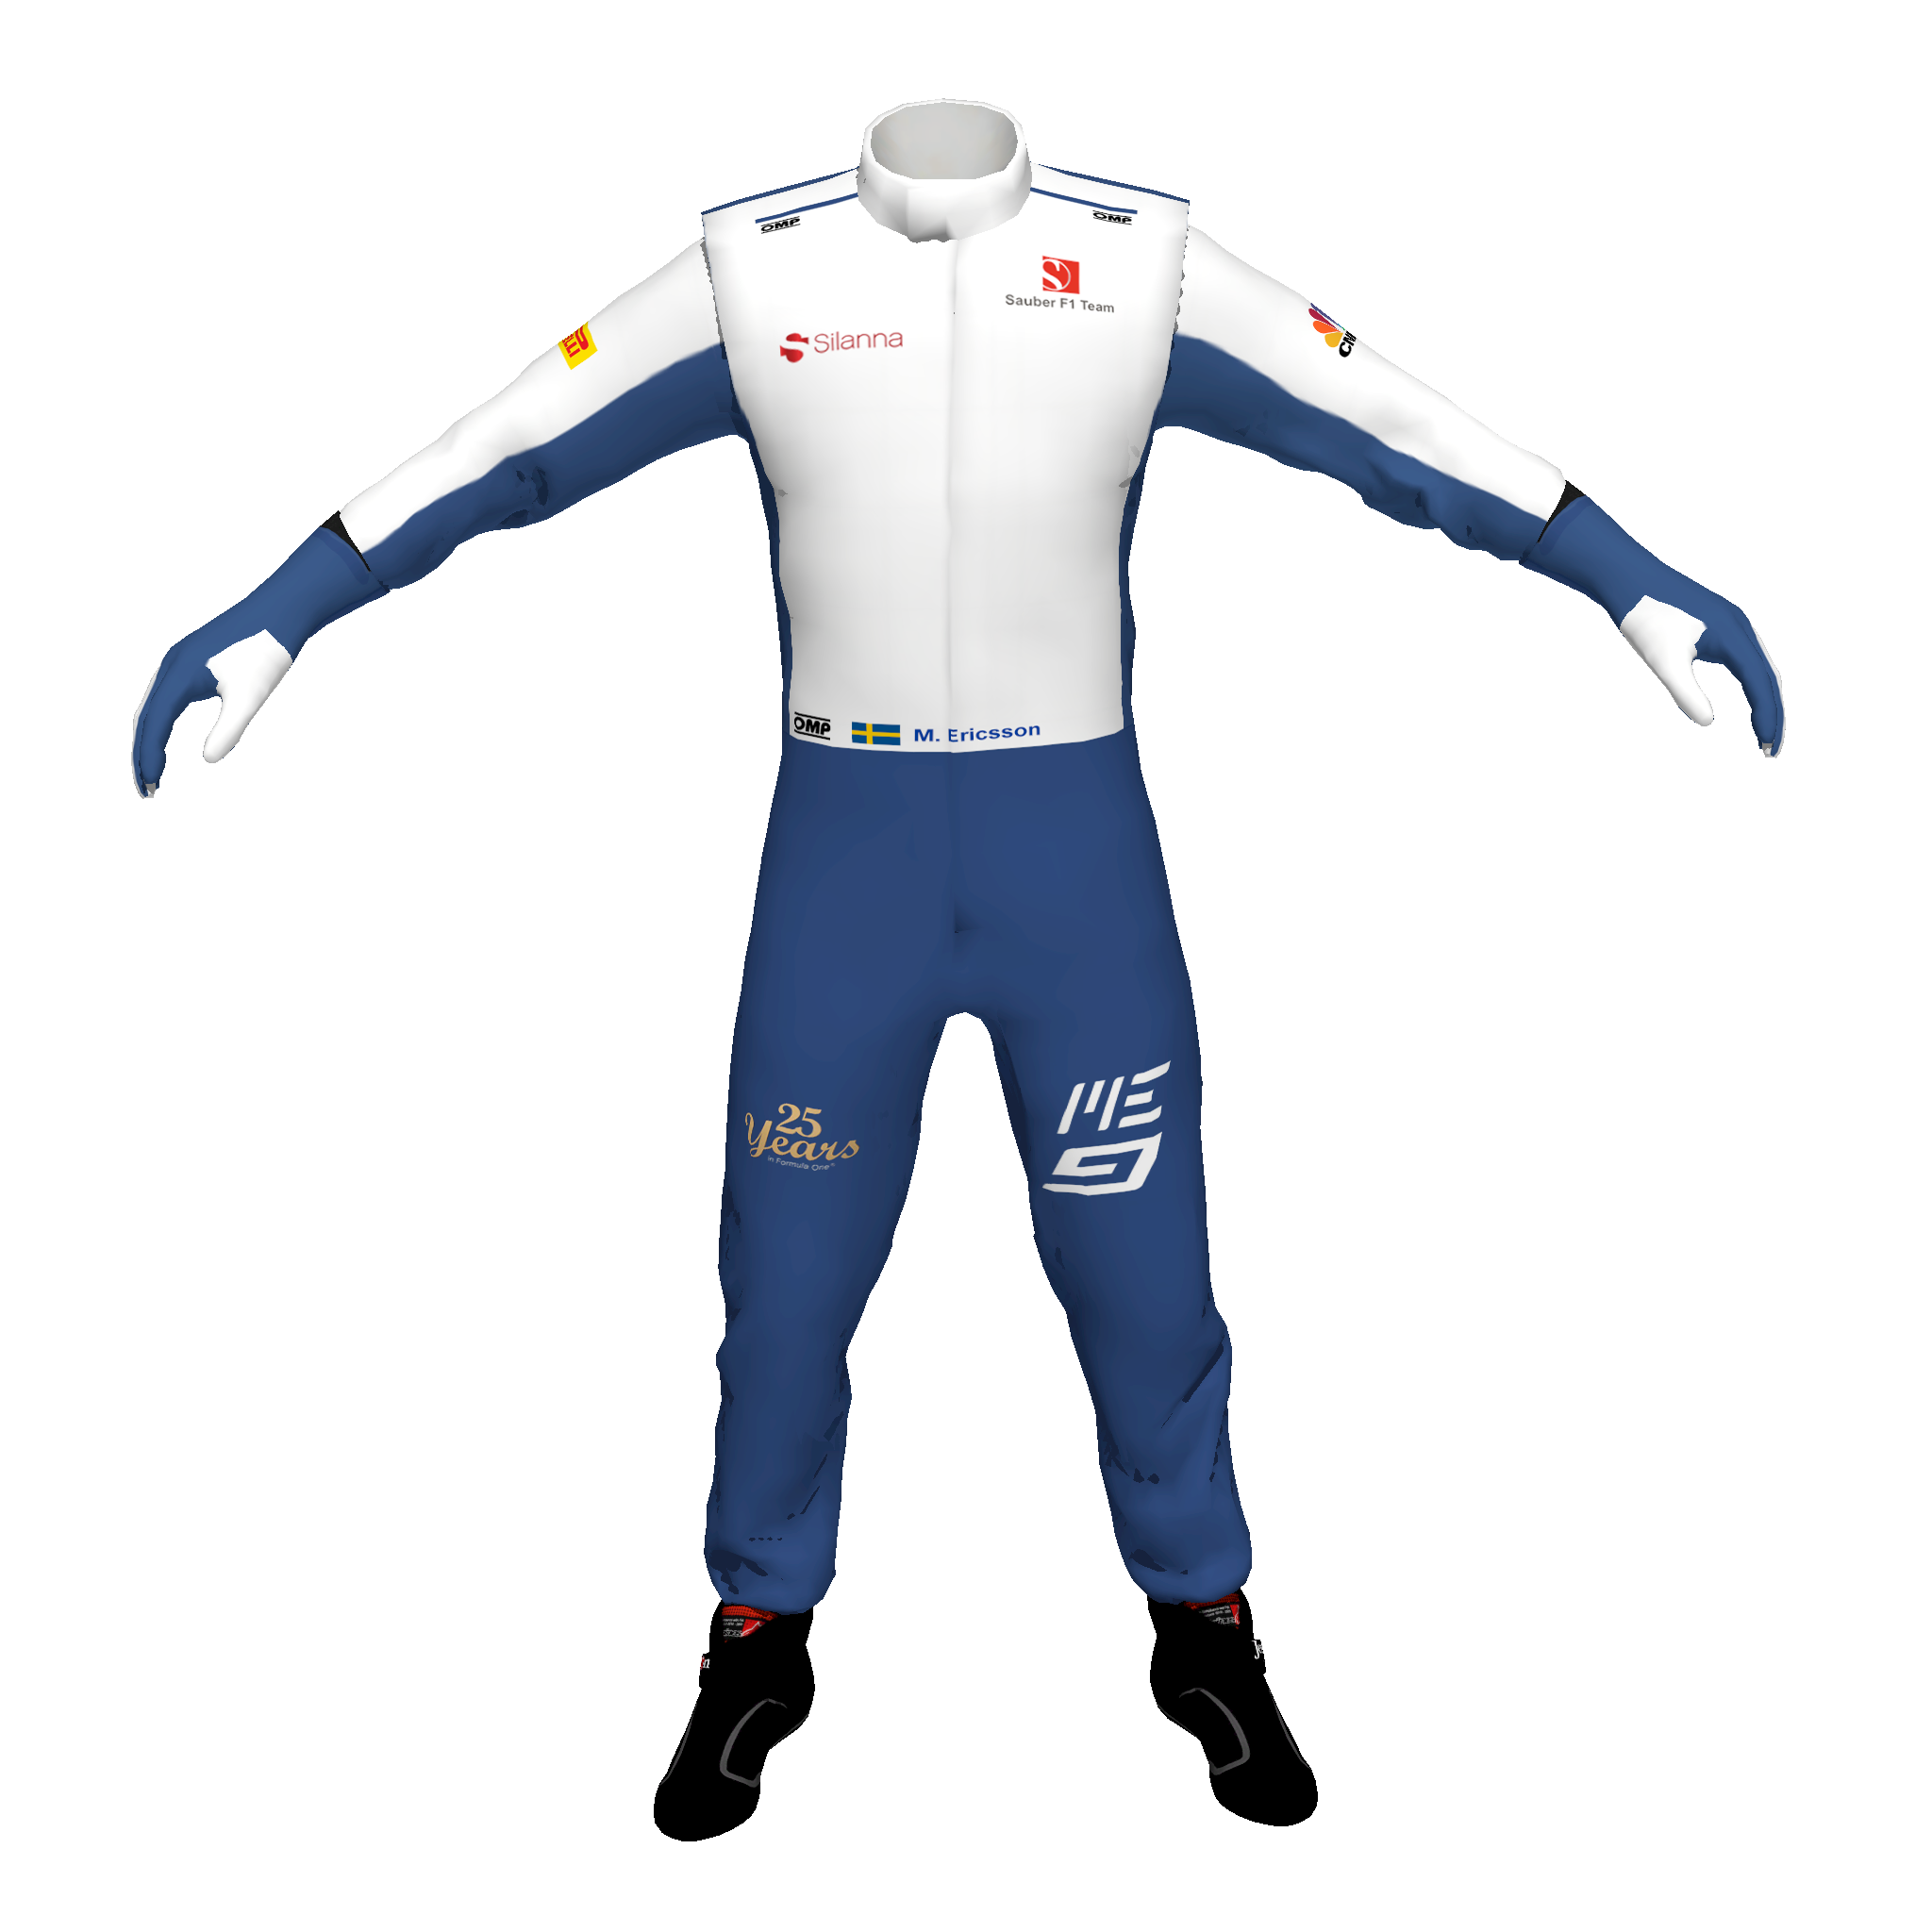 Racing Suit Template